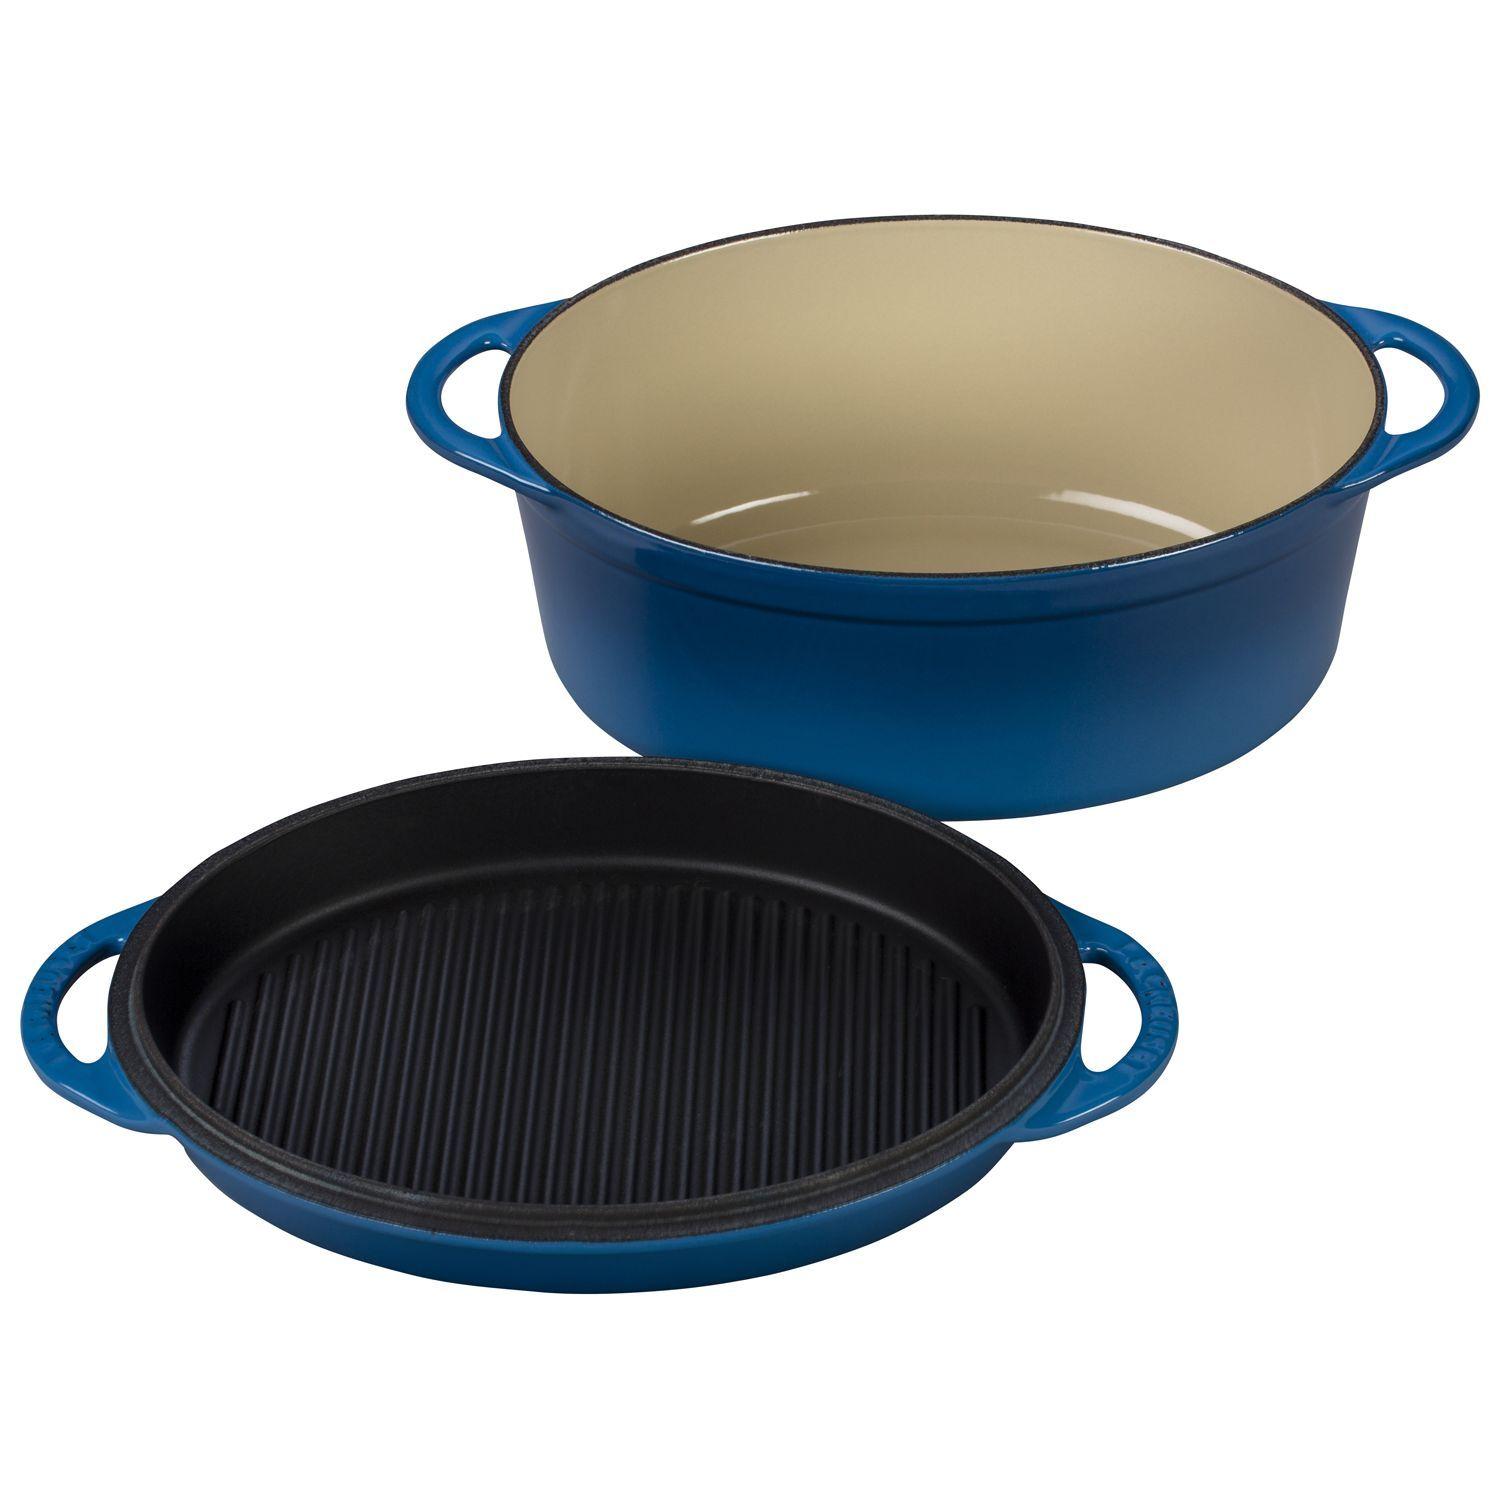 LE CREUSET 4 3⁄4 QT. MULTI-FUNCTION OVAL OVEN WITH GRILL PAN LID, MARSEILLE